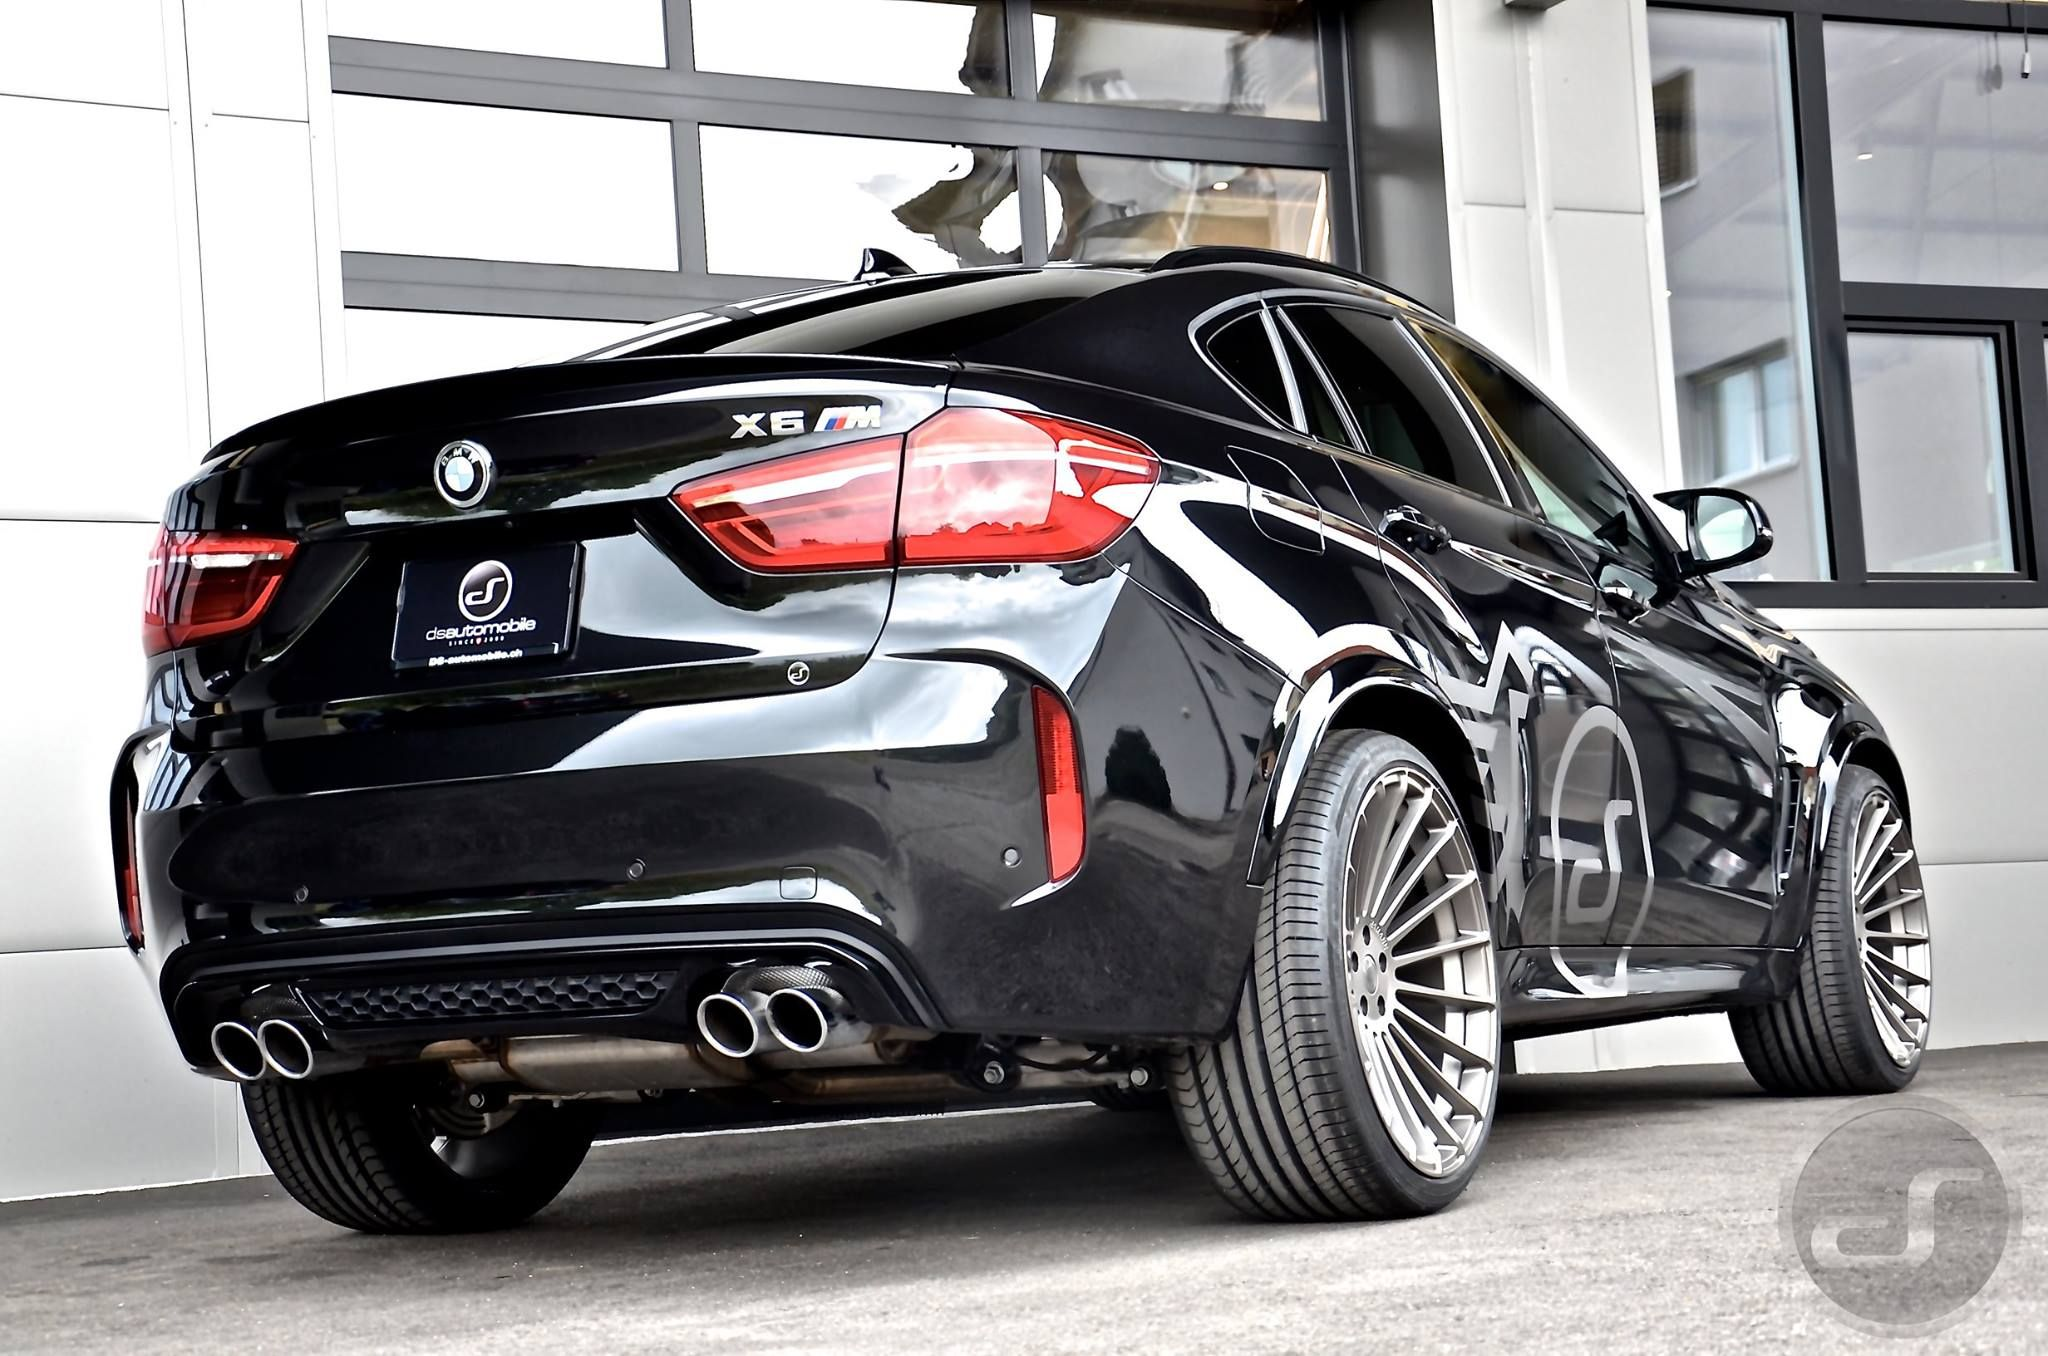 bmw x6m f86 by ds automobile trailblazers cars bmw. Black Bedroom Furniture Sets. Home Design Ideas